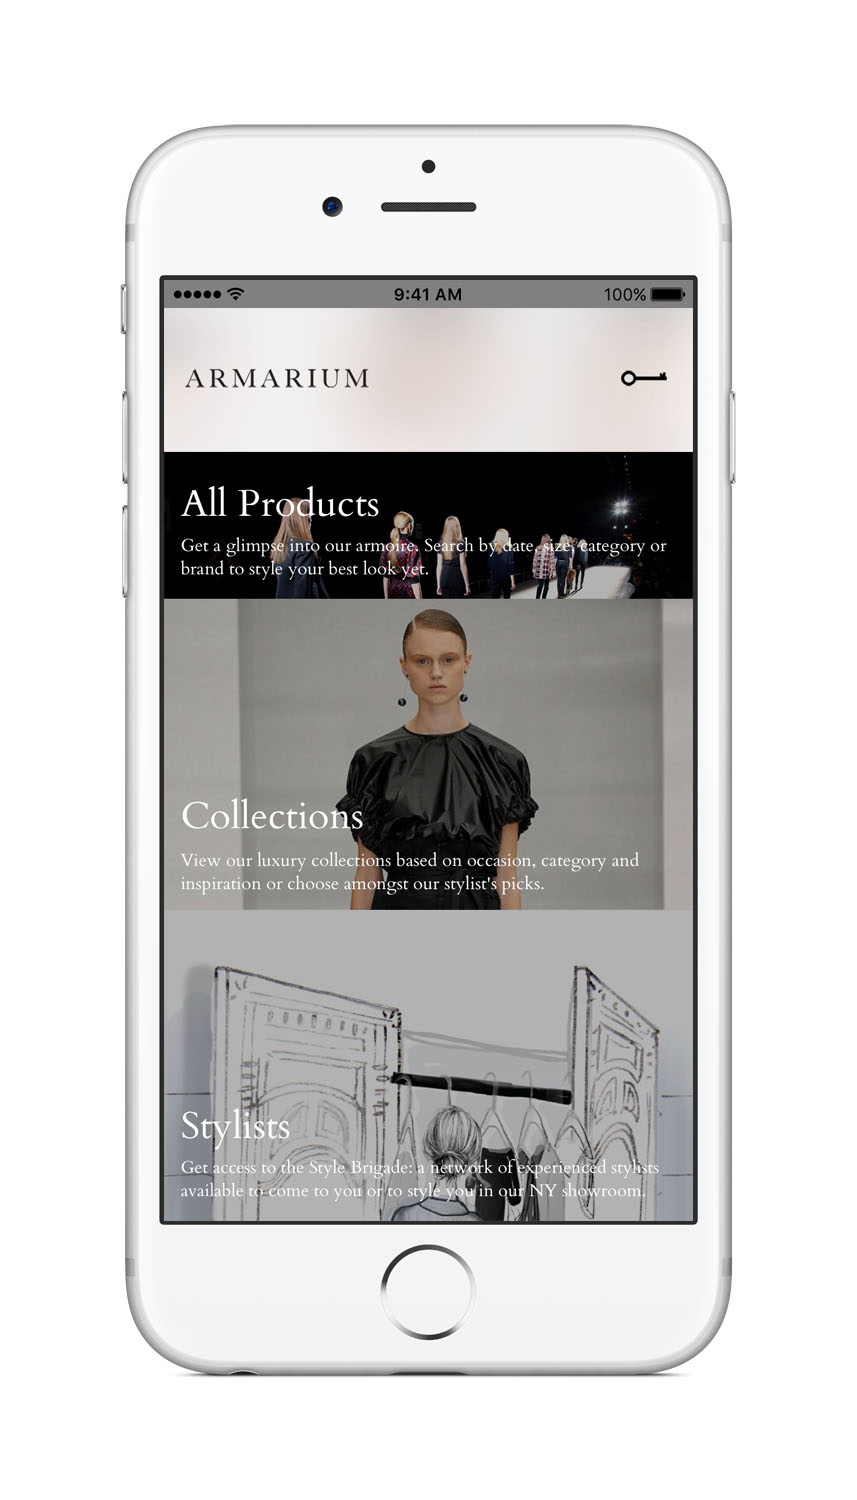 Armarium lets you borrow luxury fashion from your smartphone